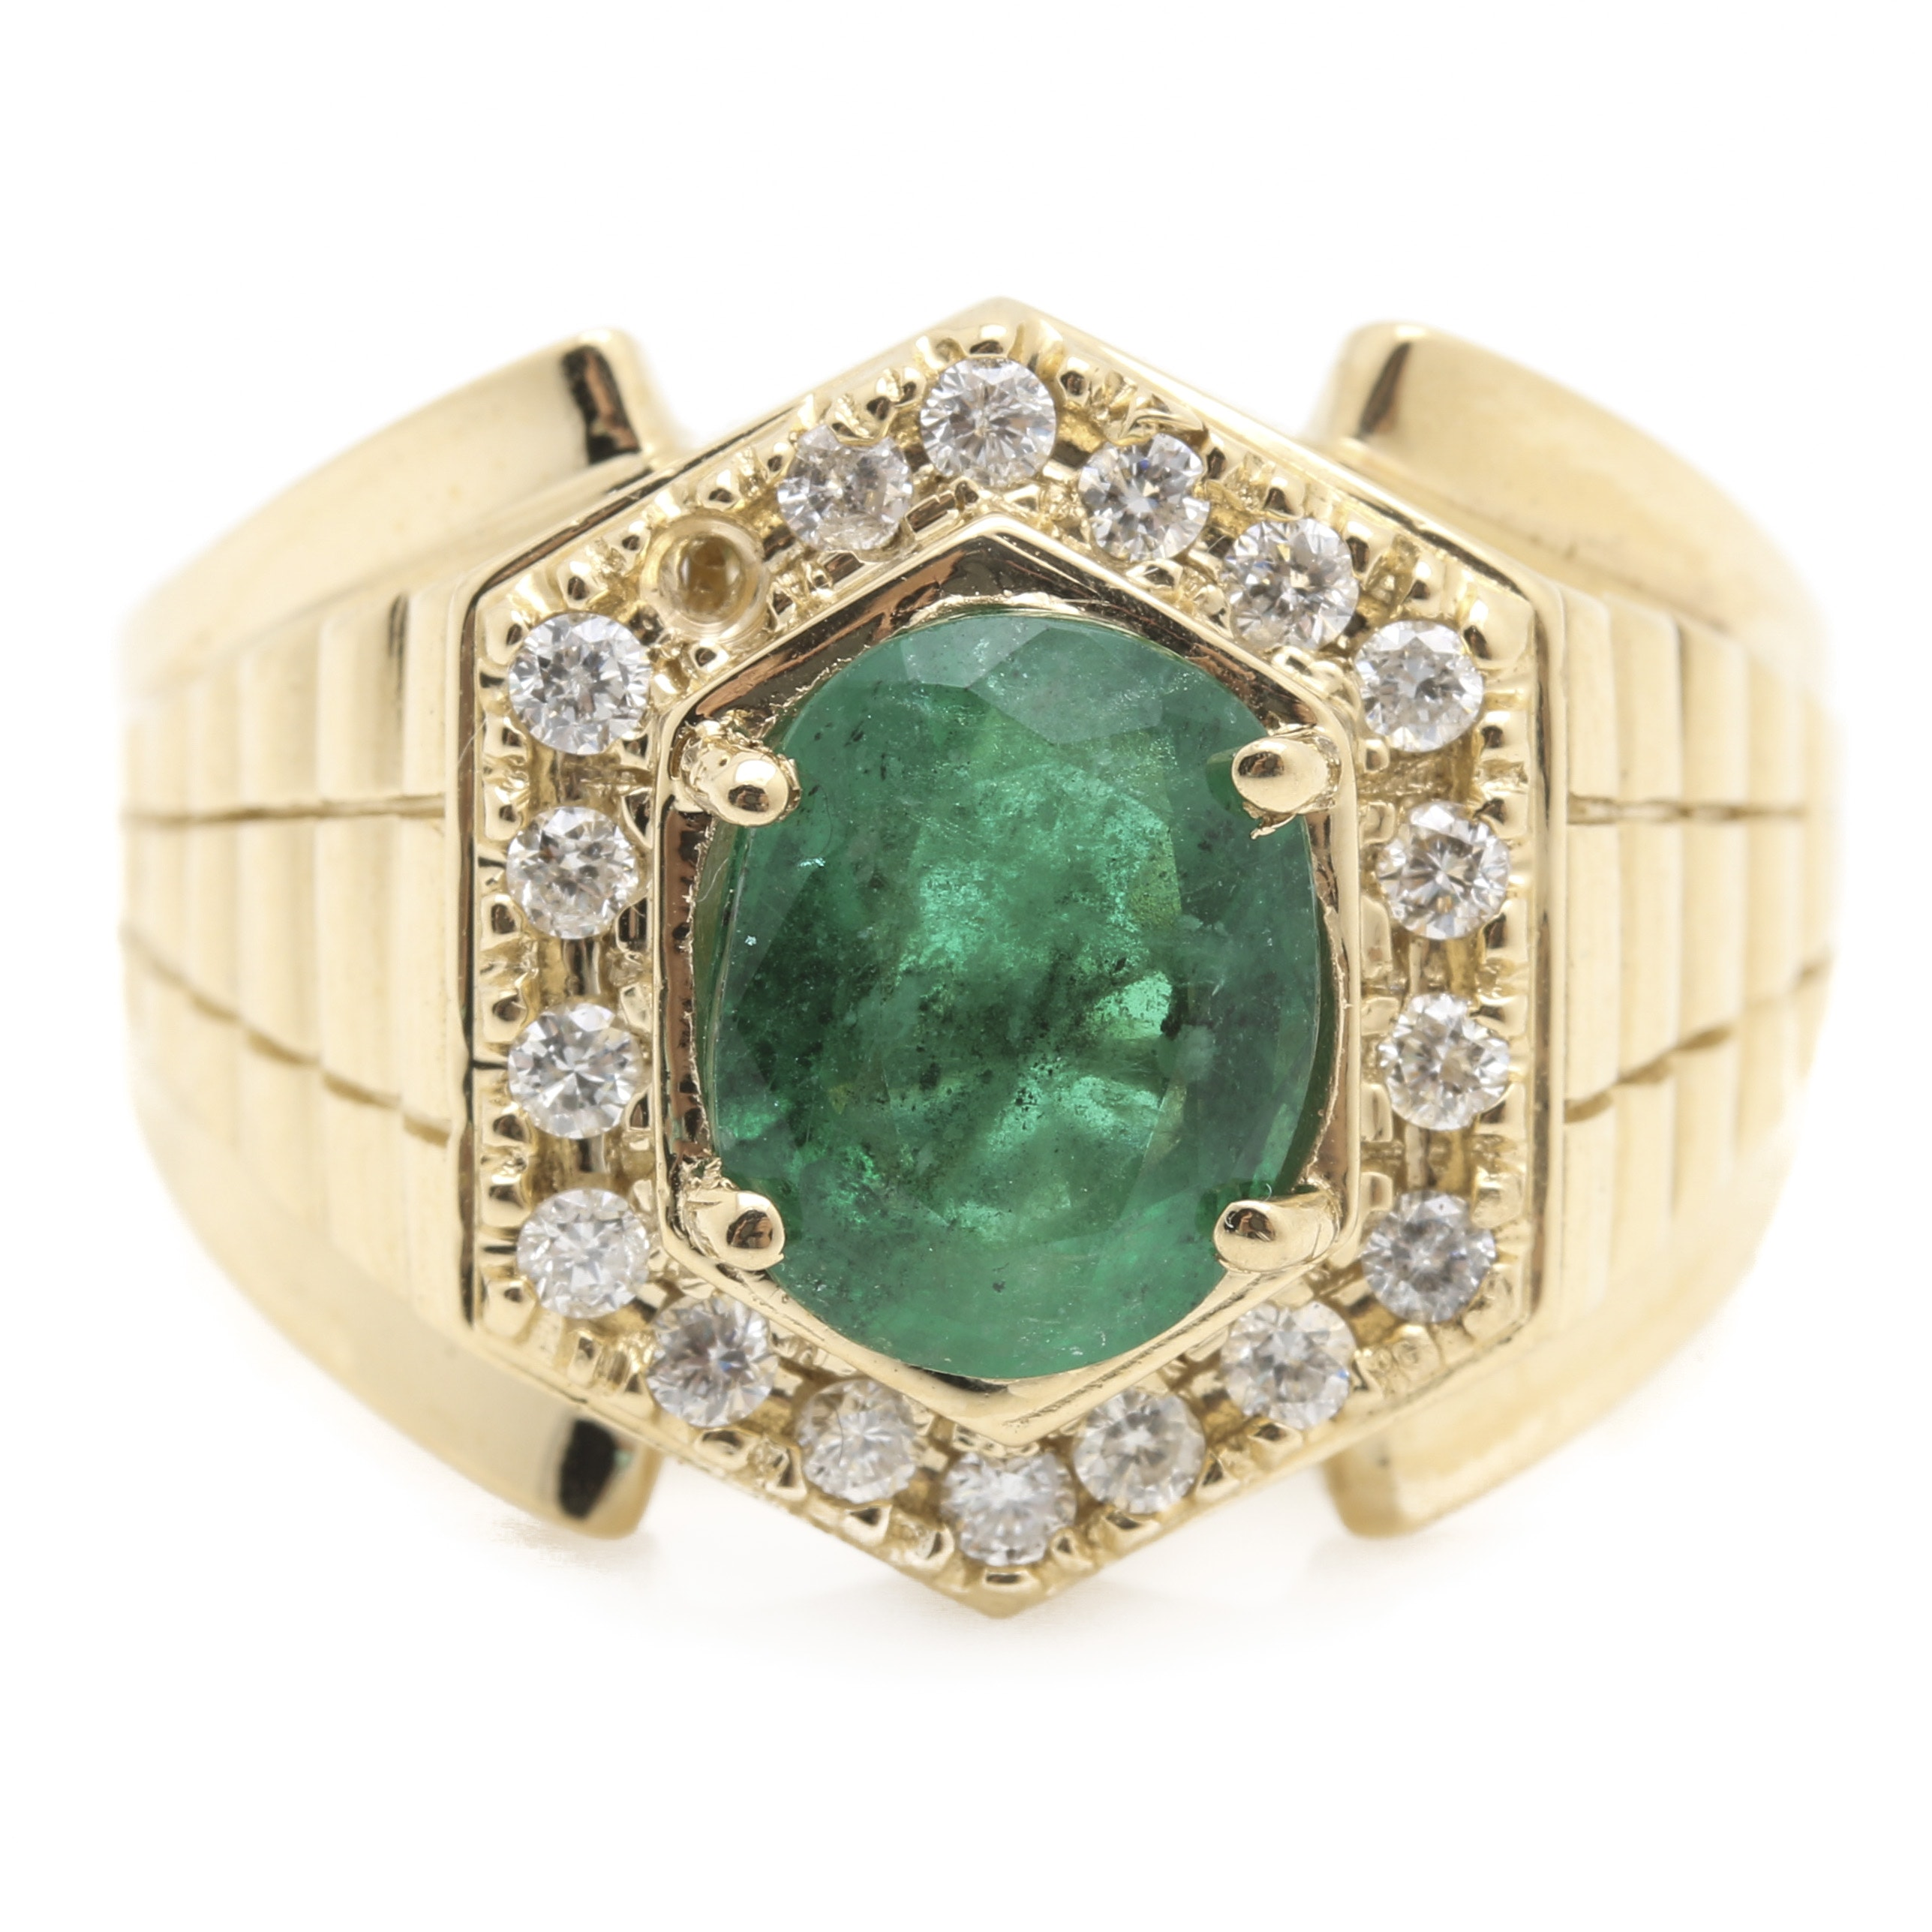 14K Yellow Gold 2.30 CTS Emerald and Diamond Ring